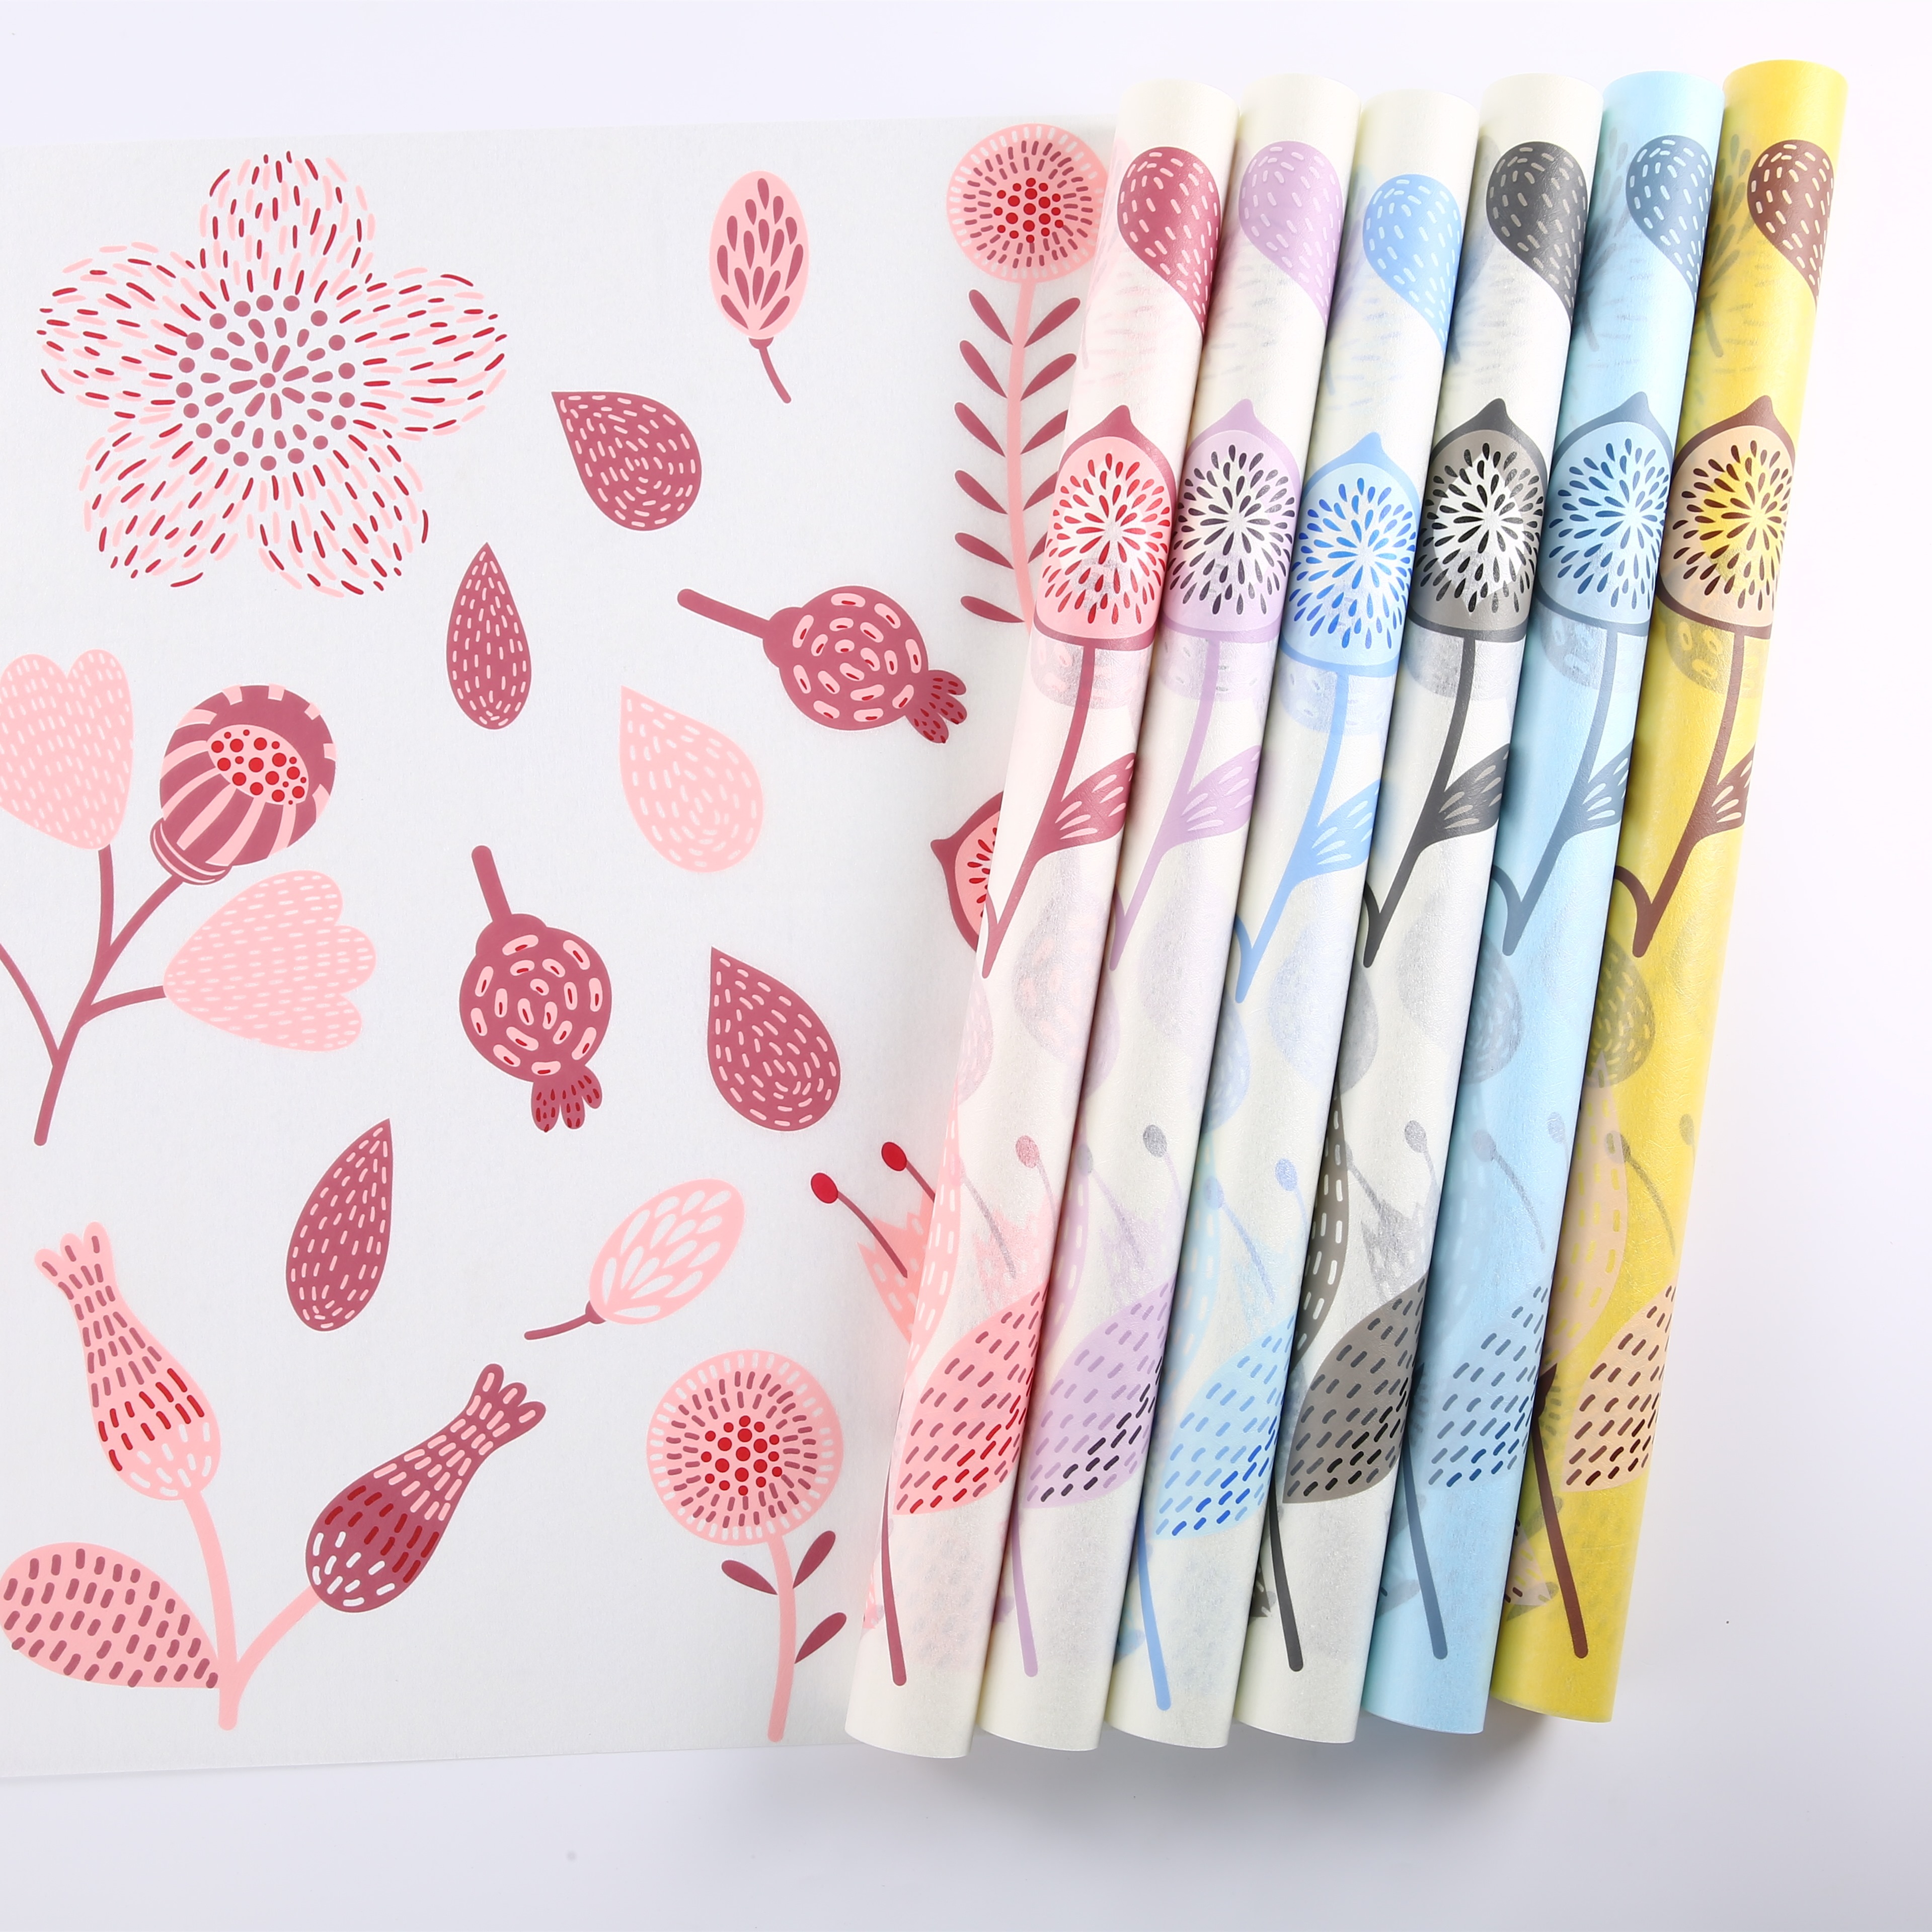 Wholesale Flower Wrapping Paper Custom Printed Wrapping Paper Roll,Gift Wrapping  Paper - Buy Gift Wrapping Paper,Flower Wrapping Paper,Fancy Gift Wrapping  Paper Product on Alibaba.com